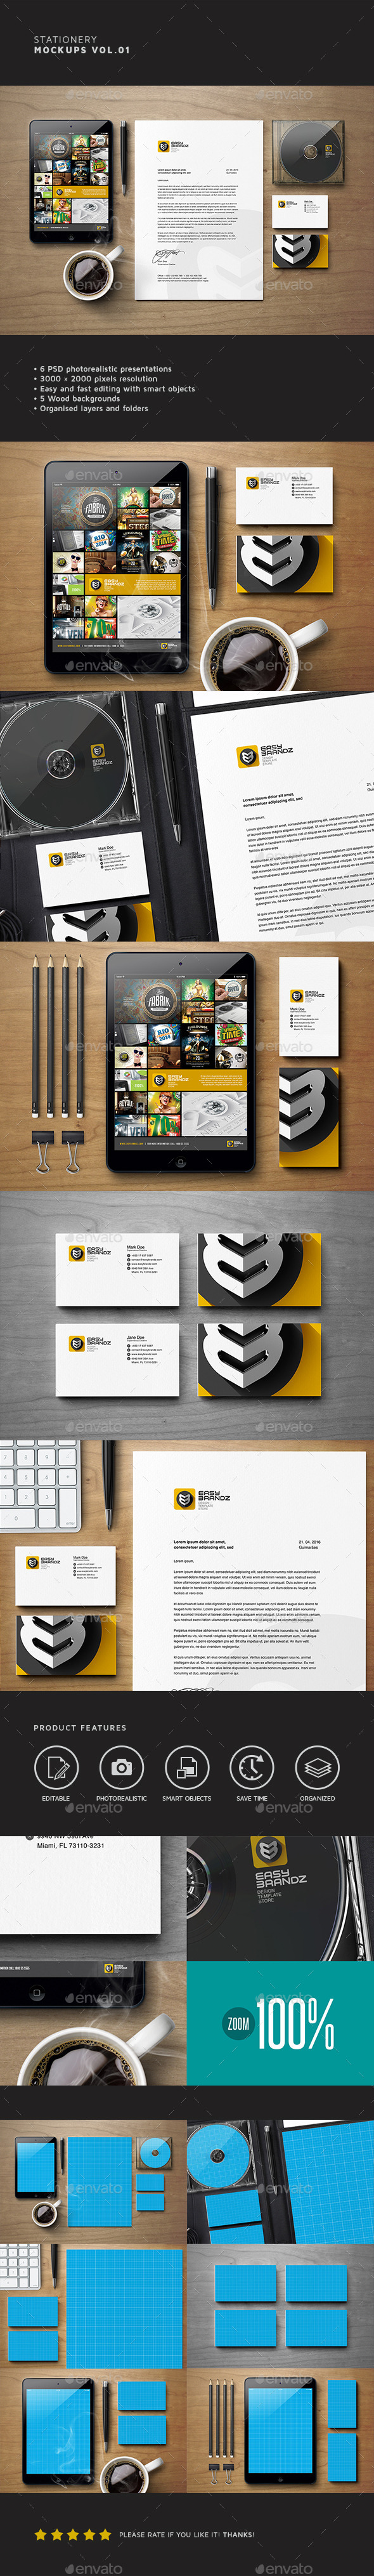 Stationery Mockups Vol.01 - Stationery Print